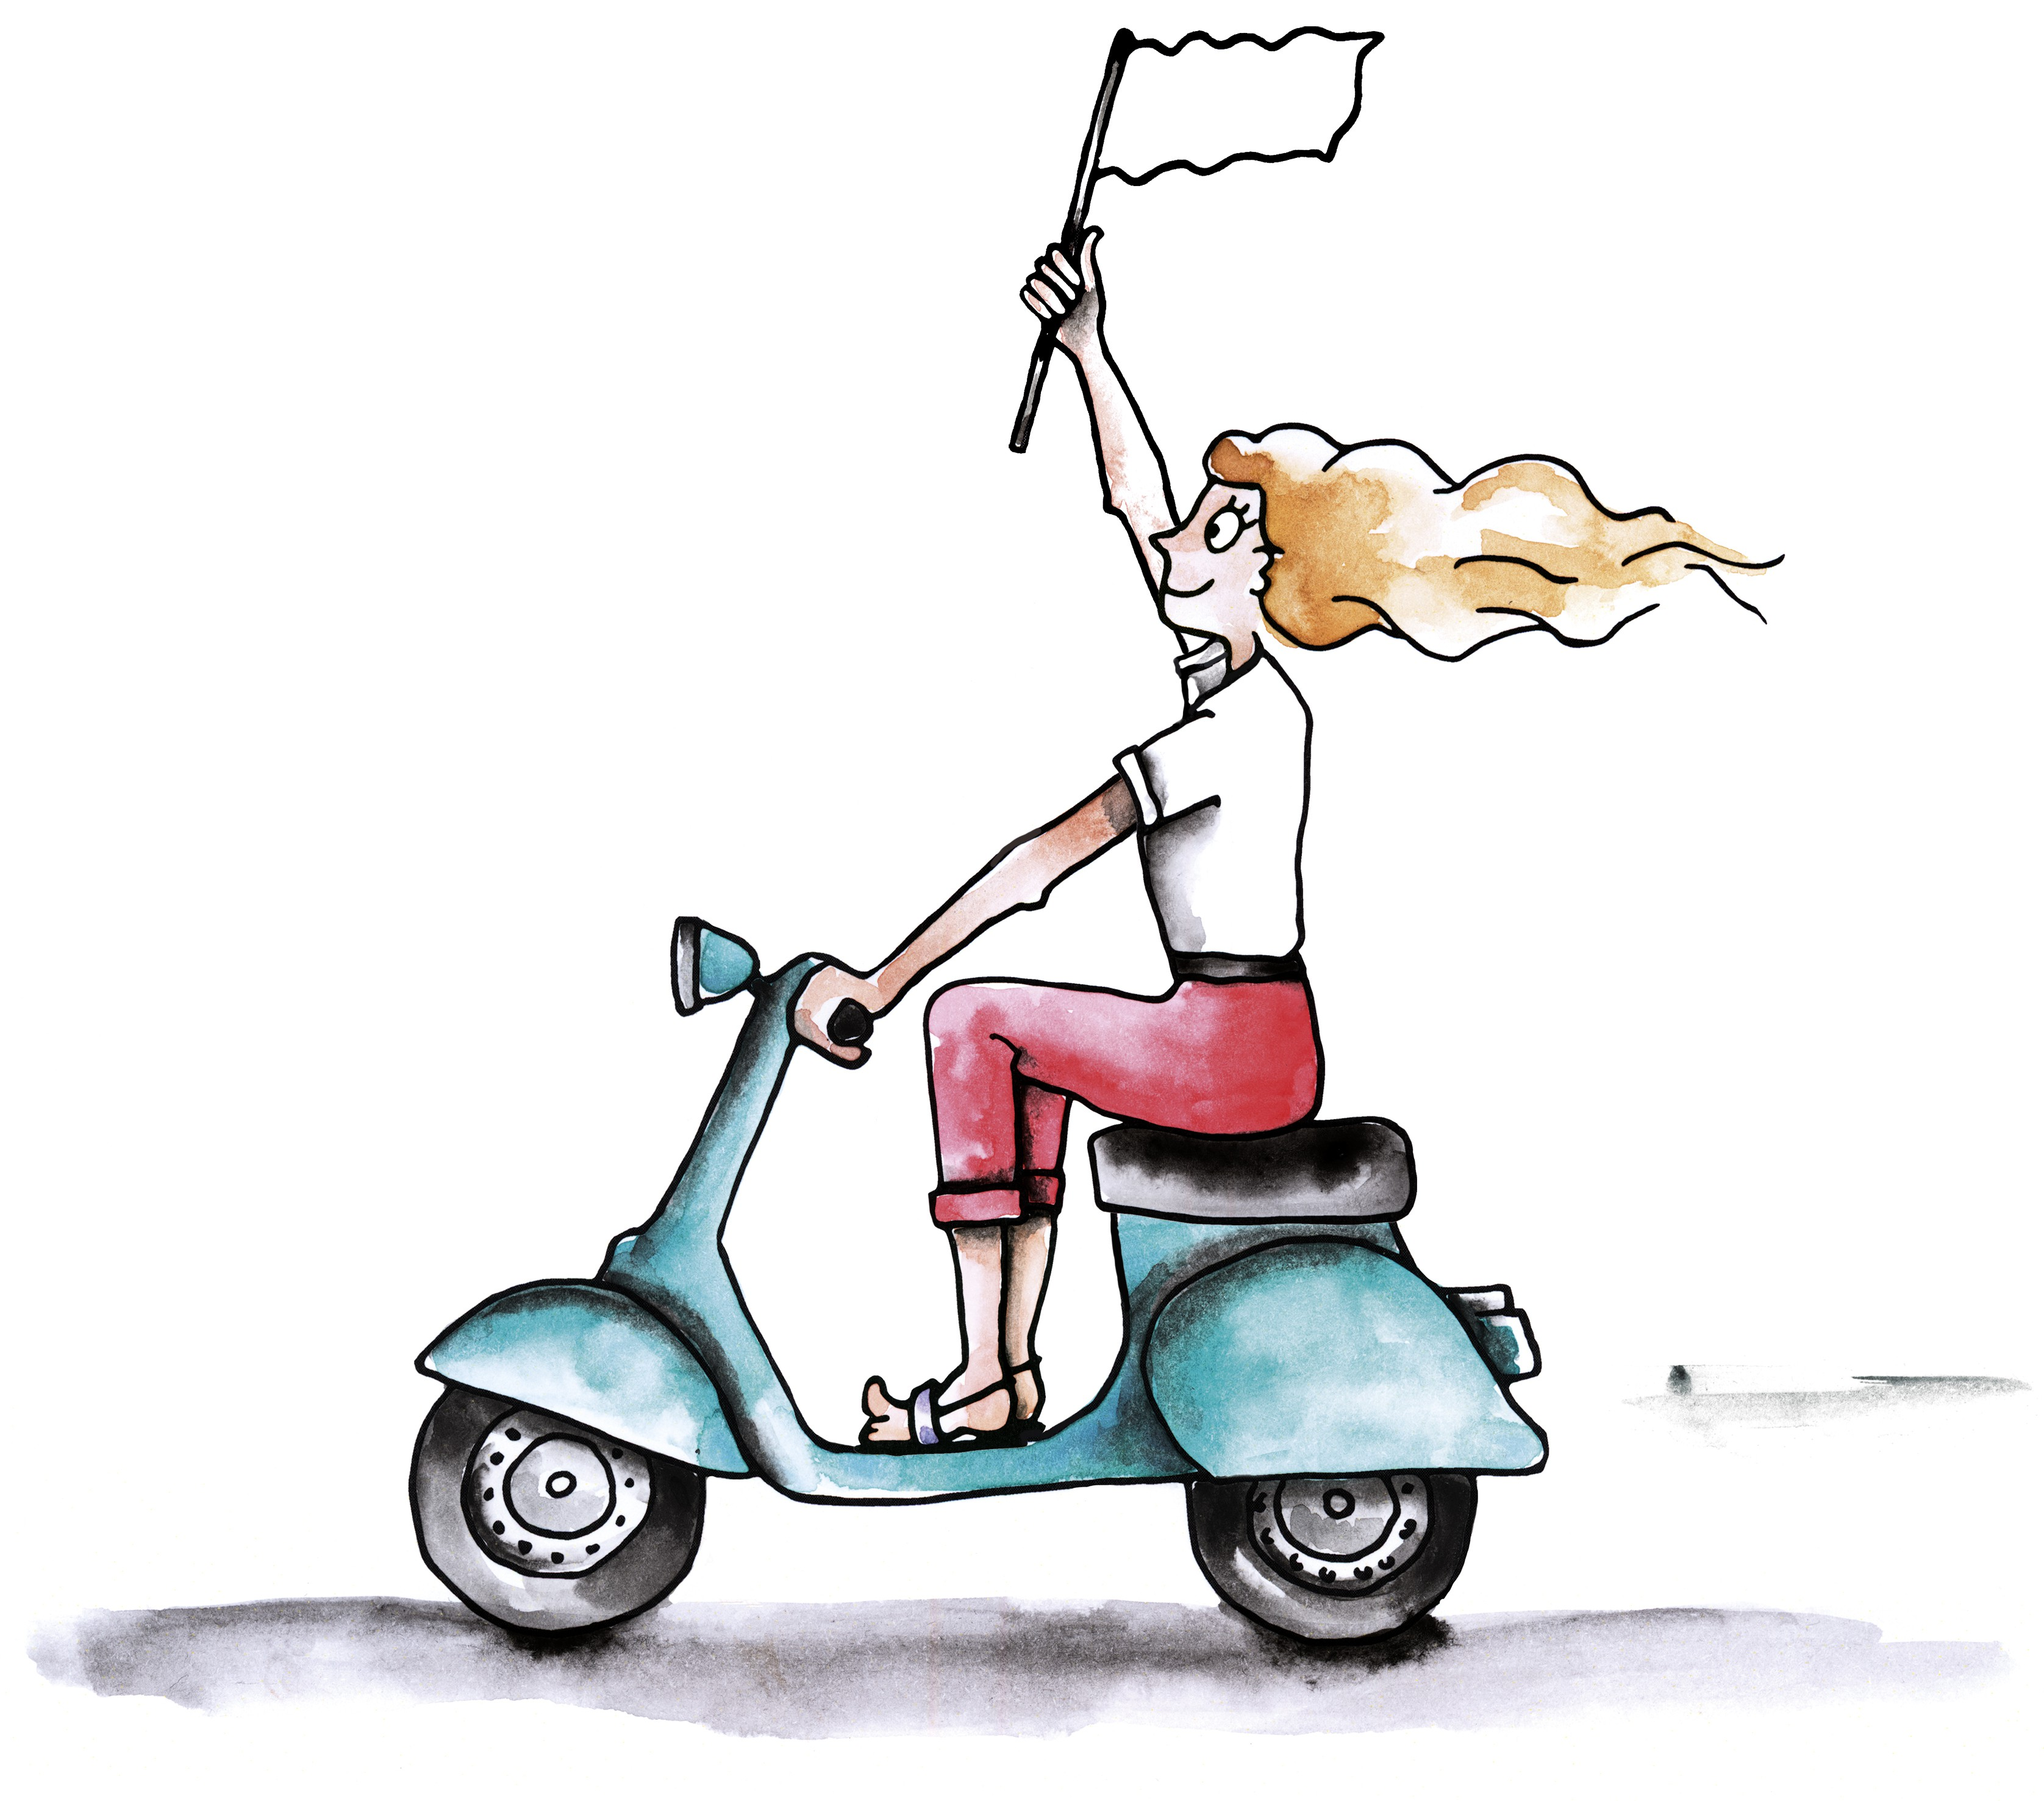 Create the cool girl screaming on a moped or motorcycle